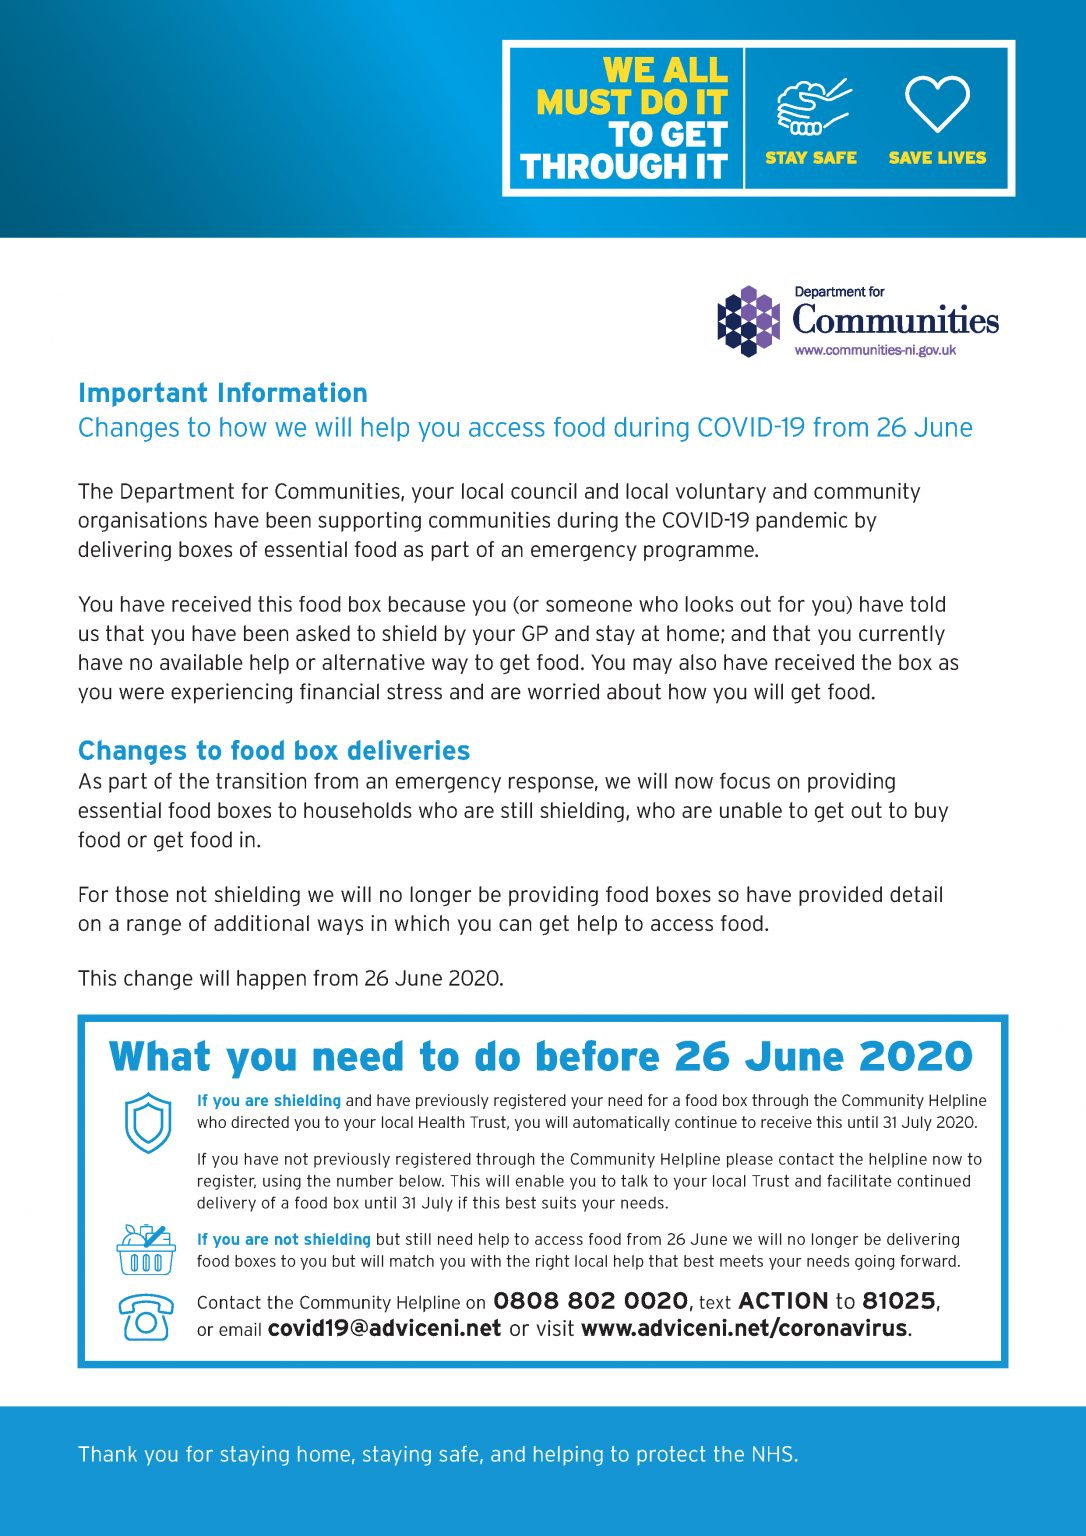 Important Information Changes to how we will help you access food during COVID-19 from 26 June